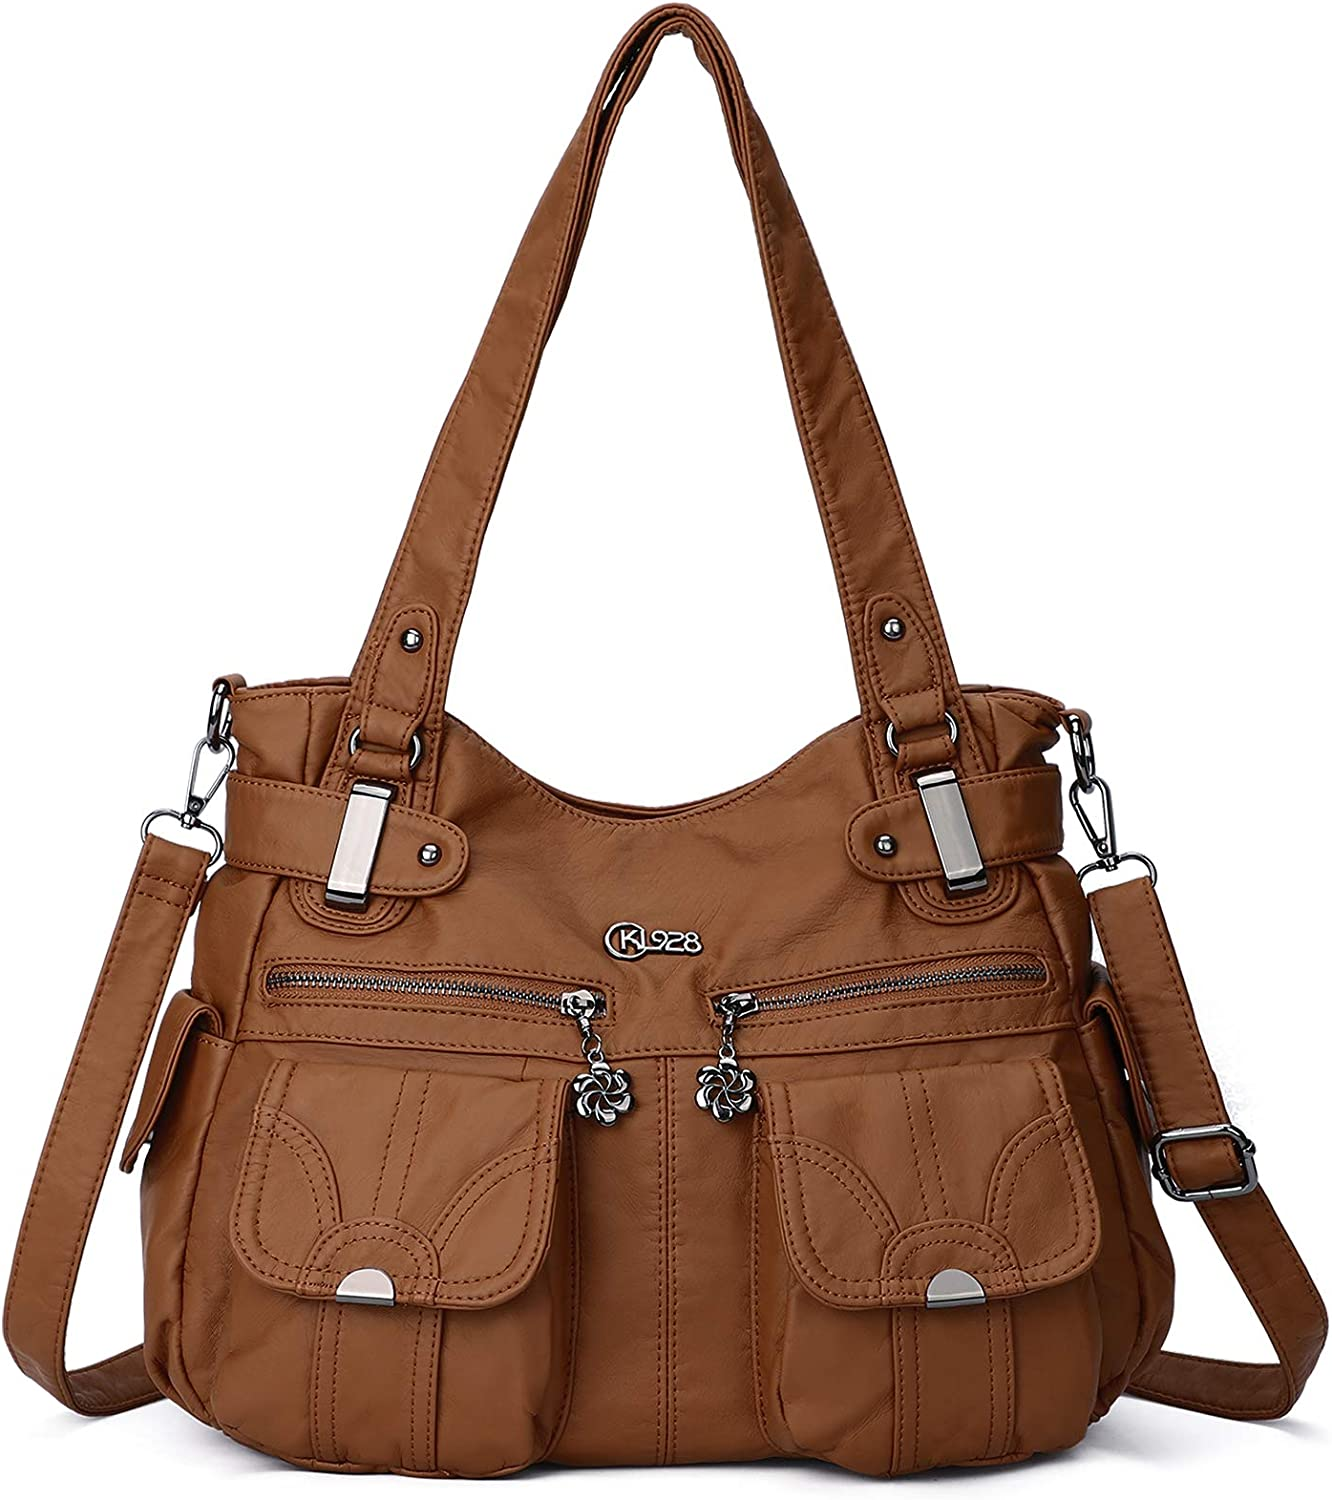 Purses and Handbags for Women Max 50% OFF Large L PU Shoulder Bags Soft Hobo wholesale